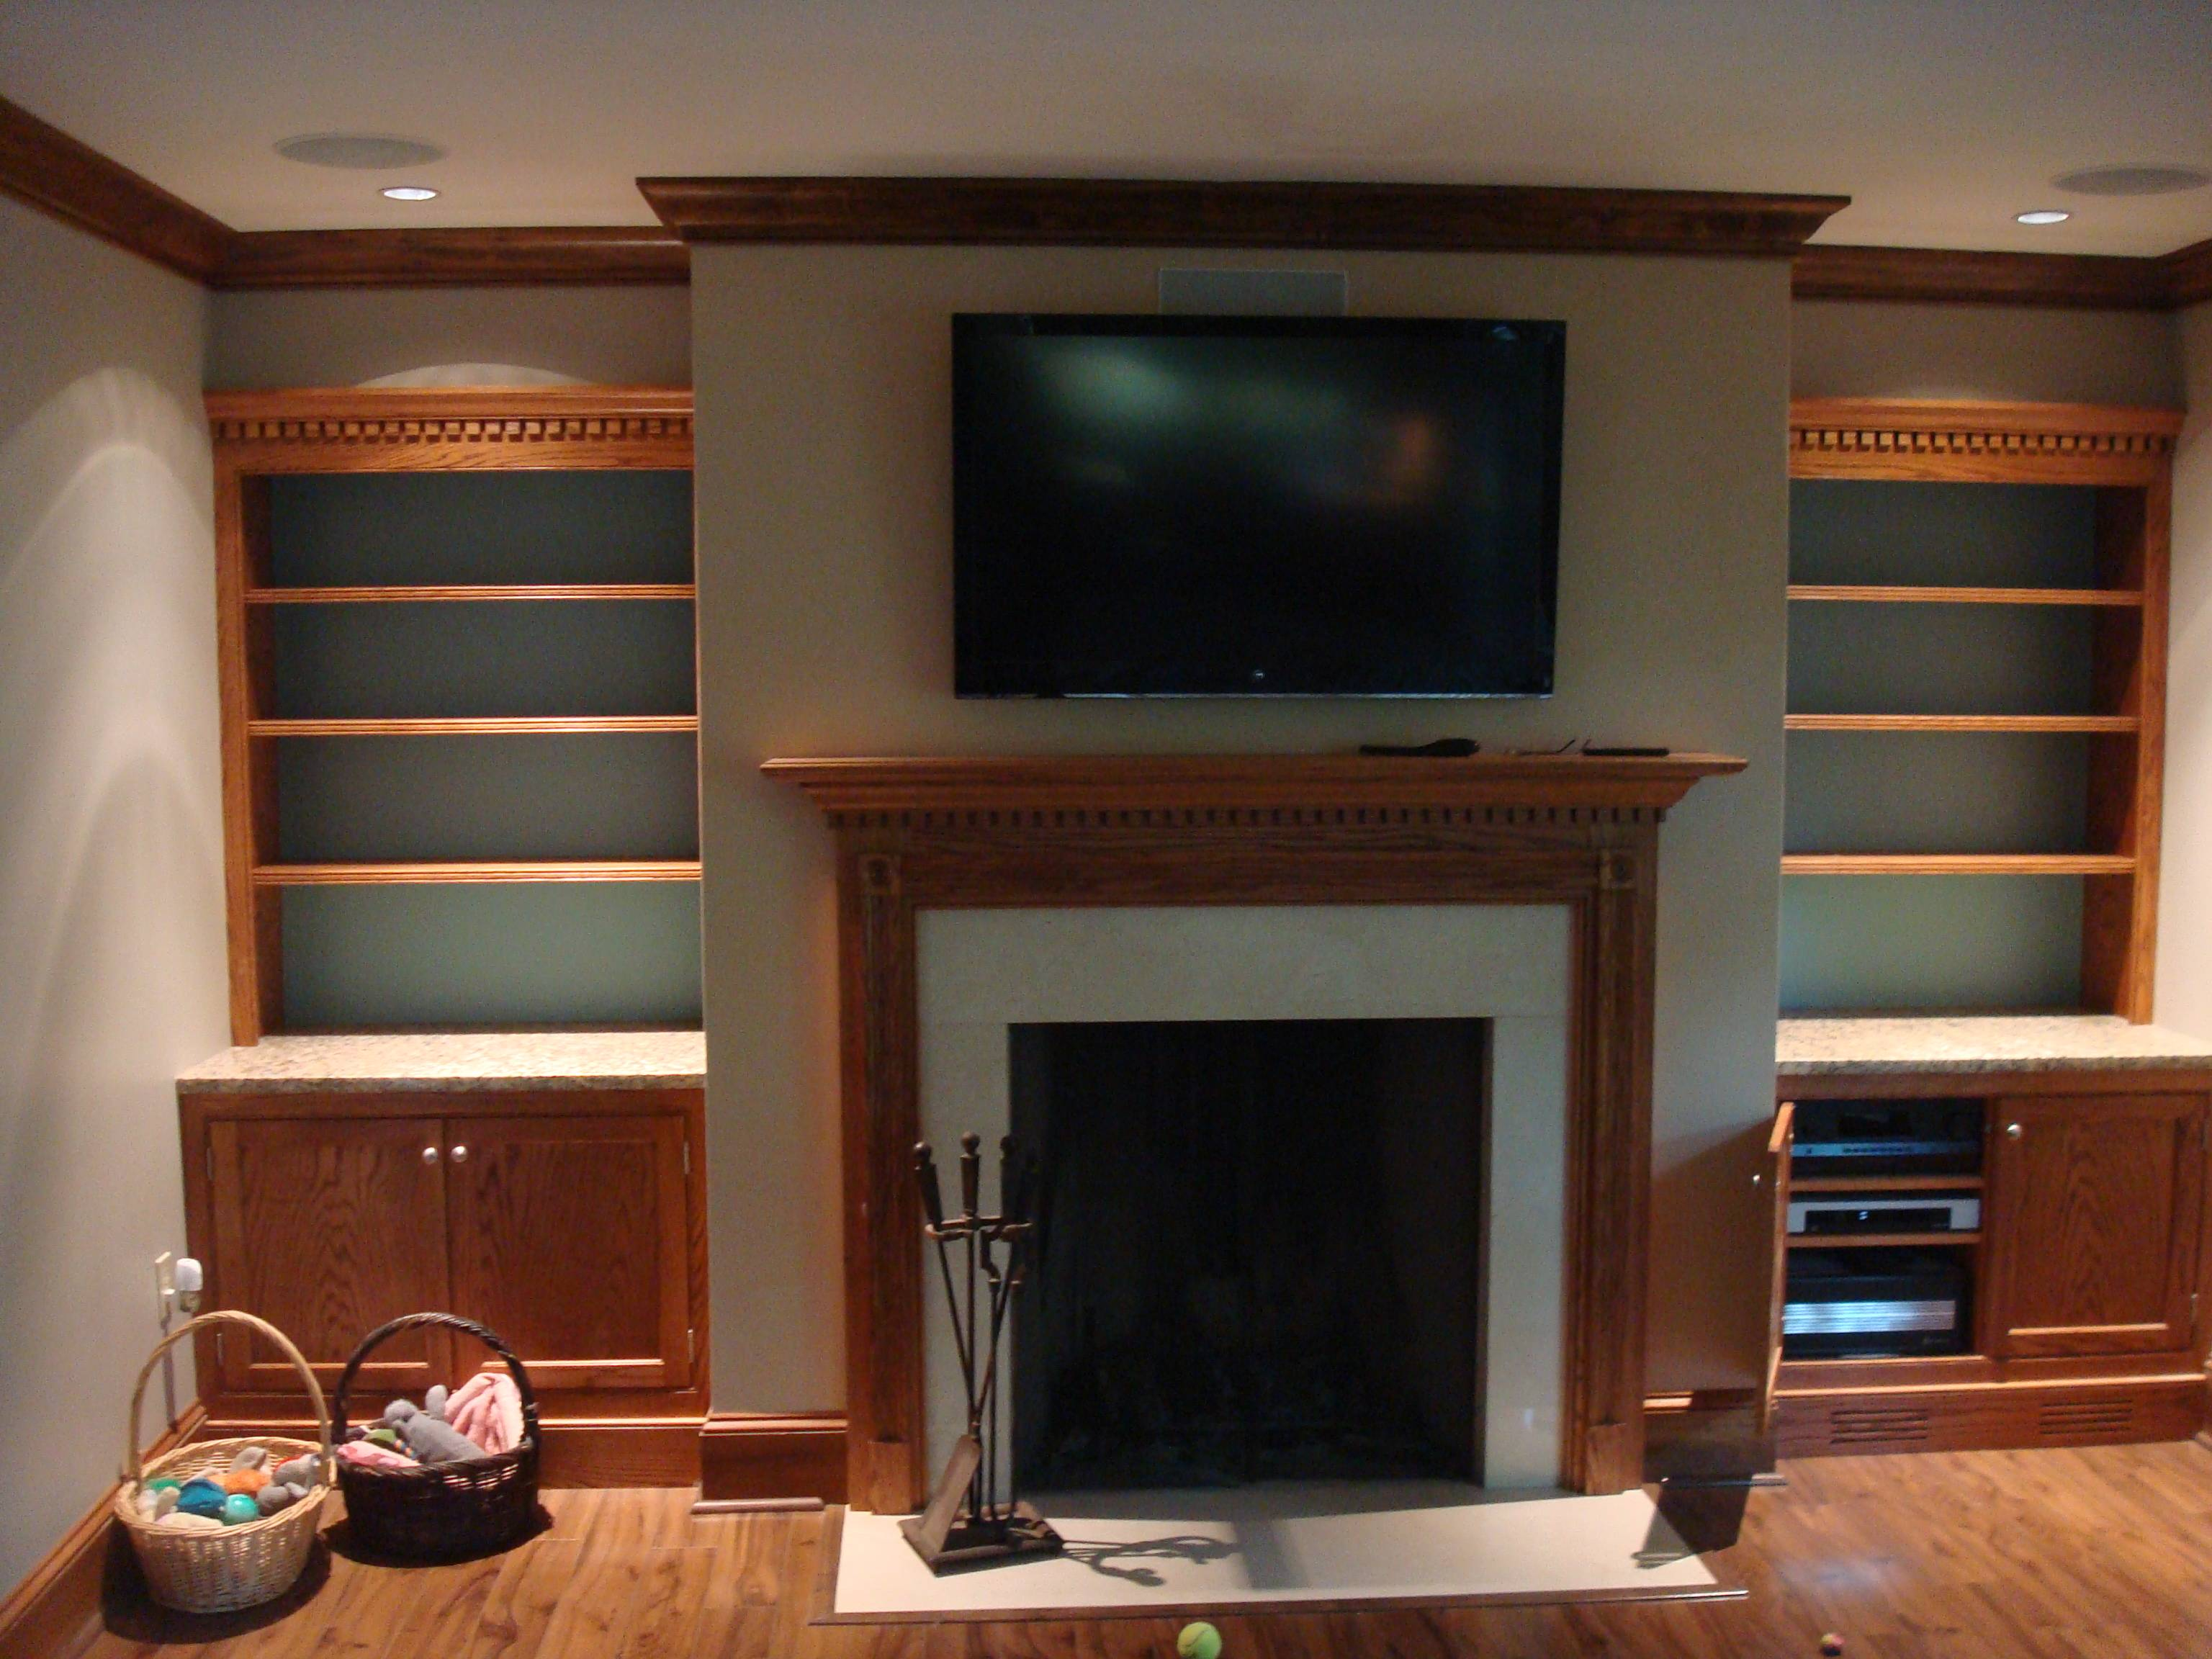 Wood Wall Behind Tv How Do I Mount A Tv On A Solid Wood Wall Home Improvement Stack